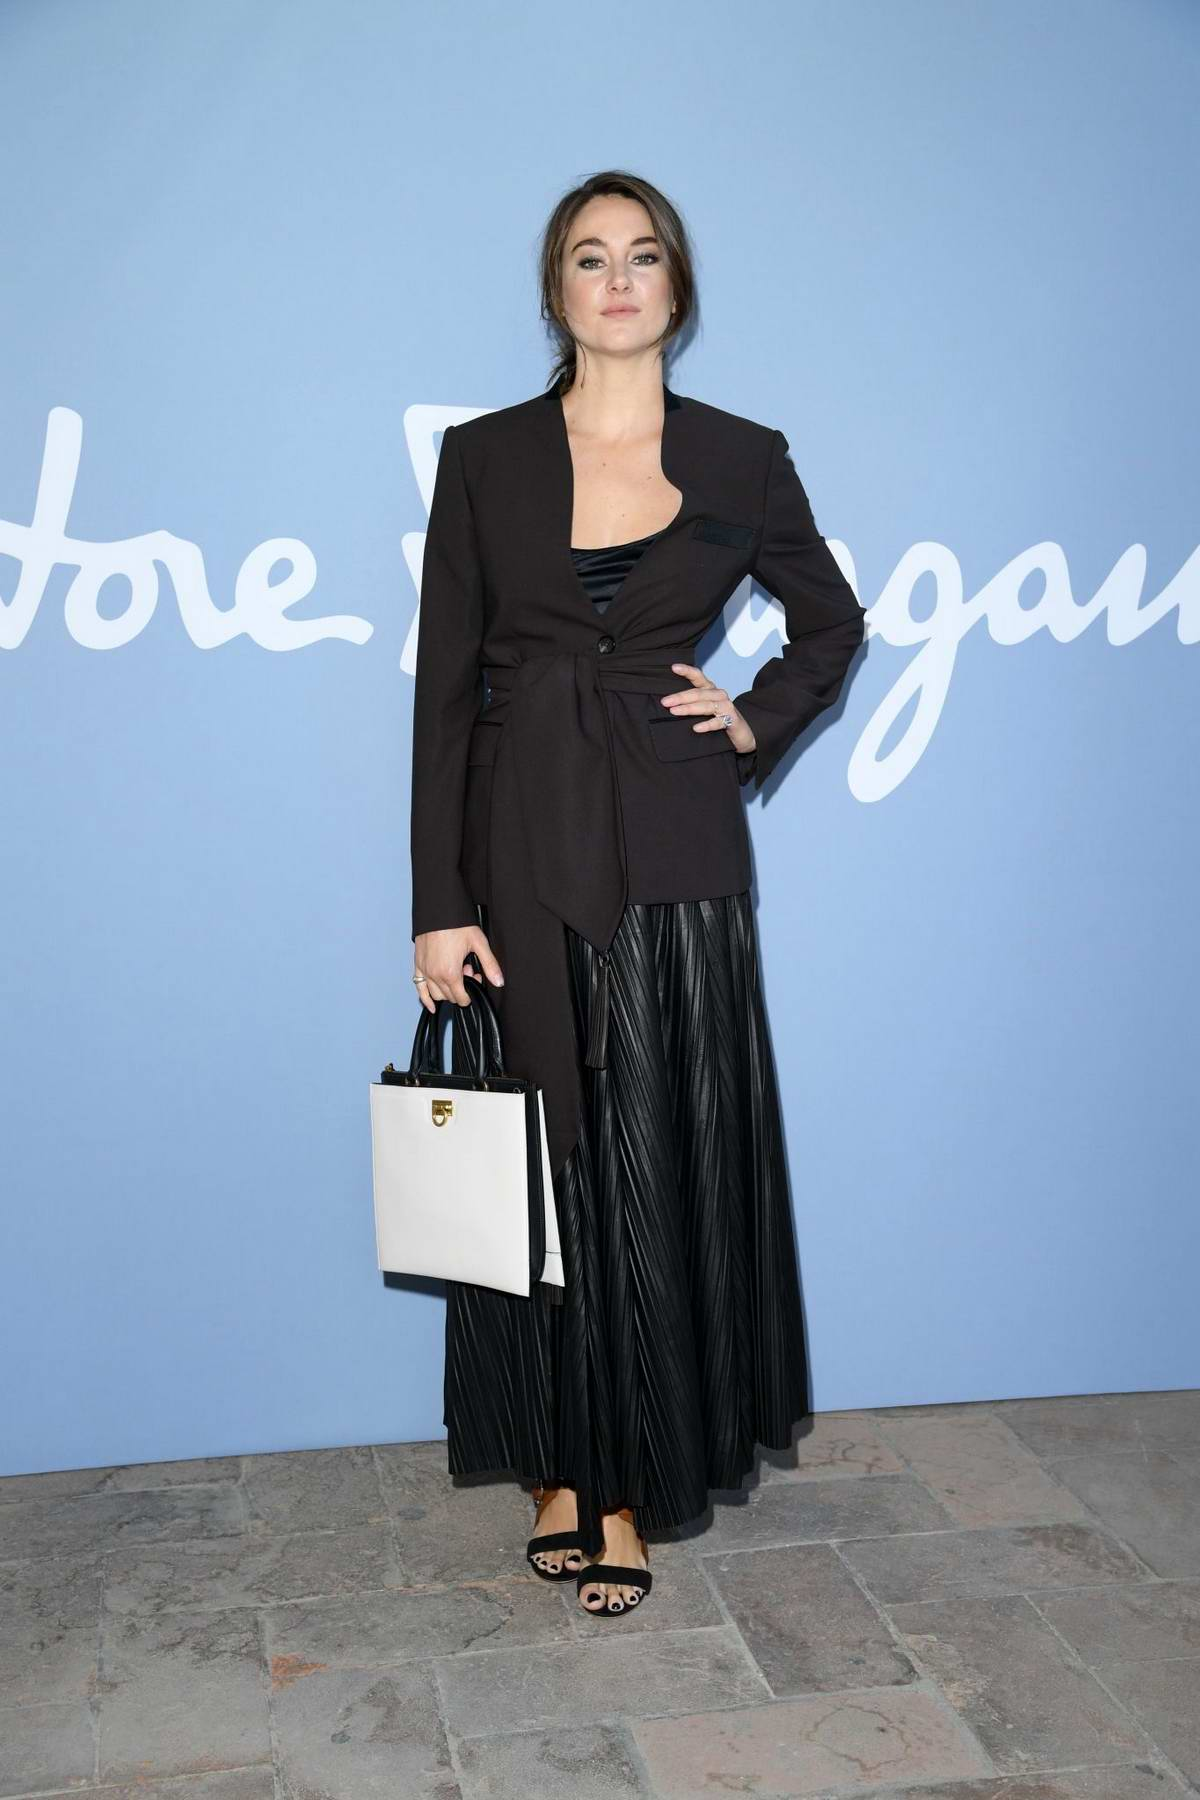 Shailene Woodley attends Salvatore Ferragamo show during Milan Fashion Week, Spring/Summer 2020 in Milan, Italy